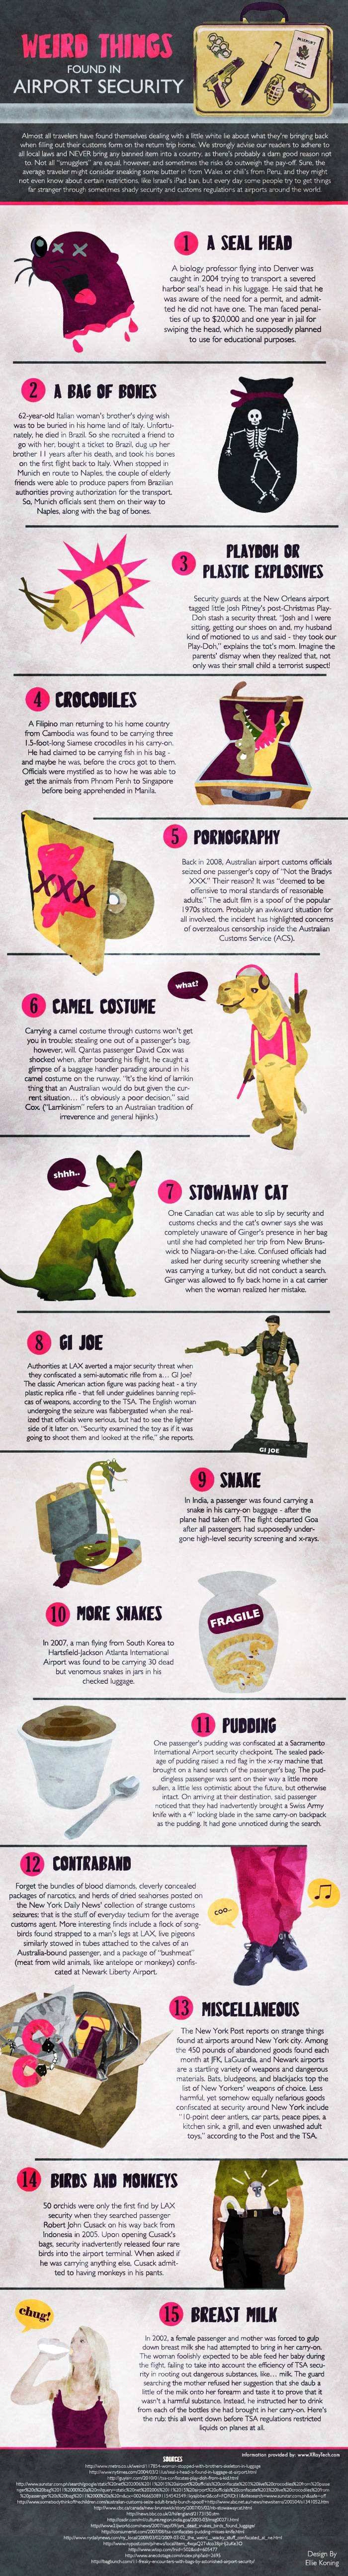 Weird Things Found at the Airport Security (Infographic)